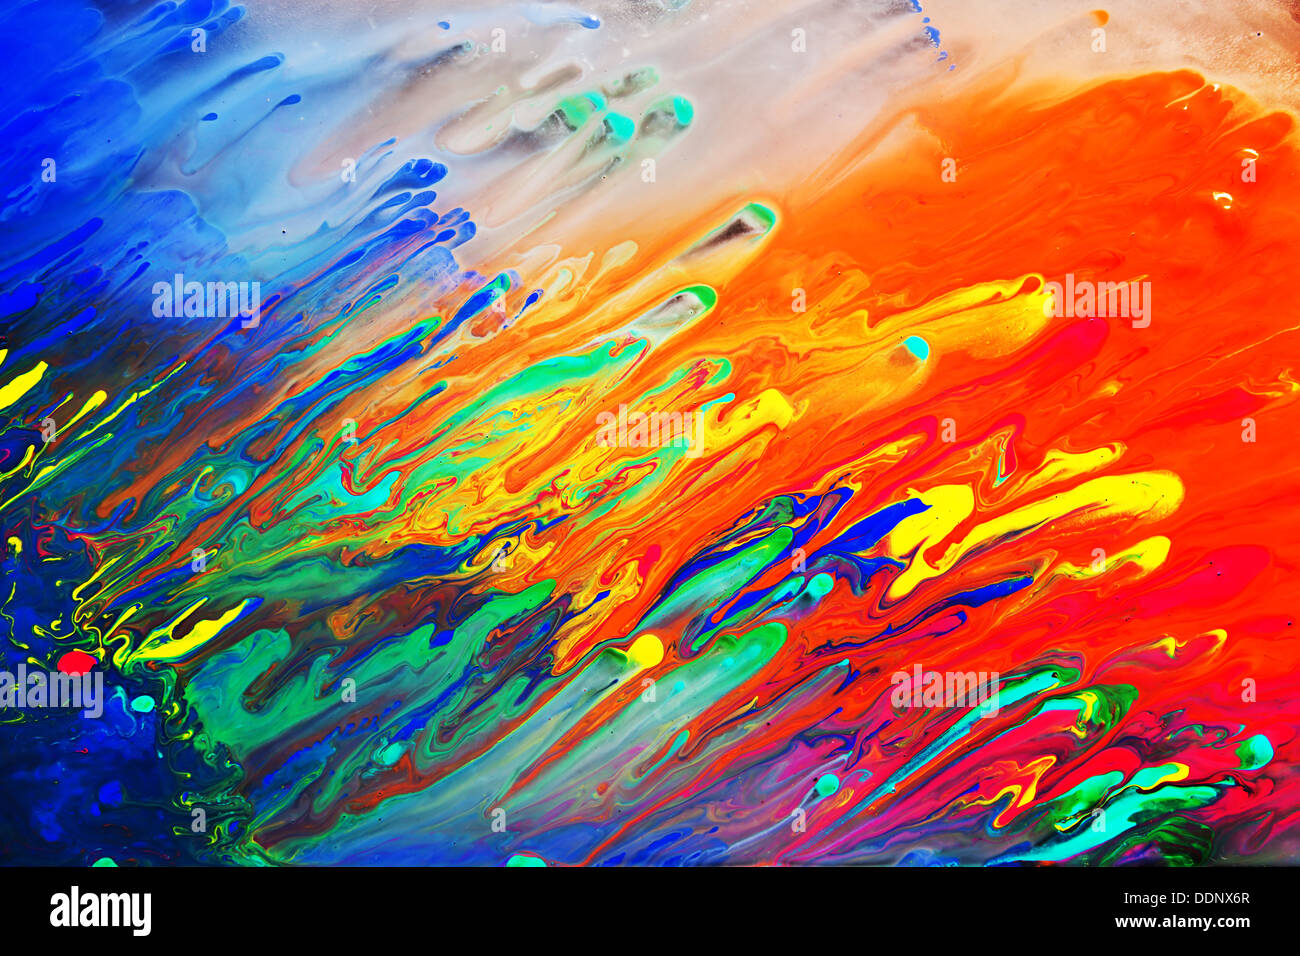 Bright Colourful Abstract Art Painting Background Close Up